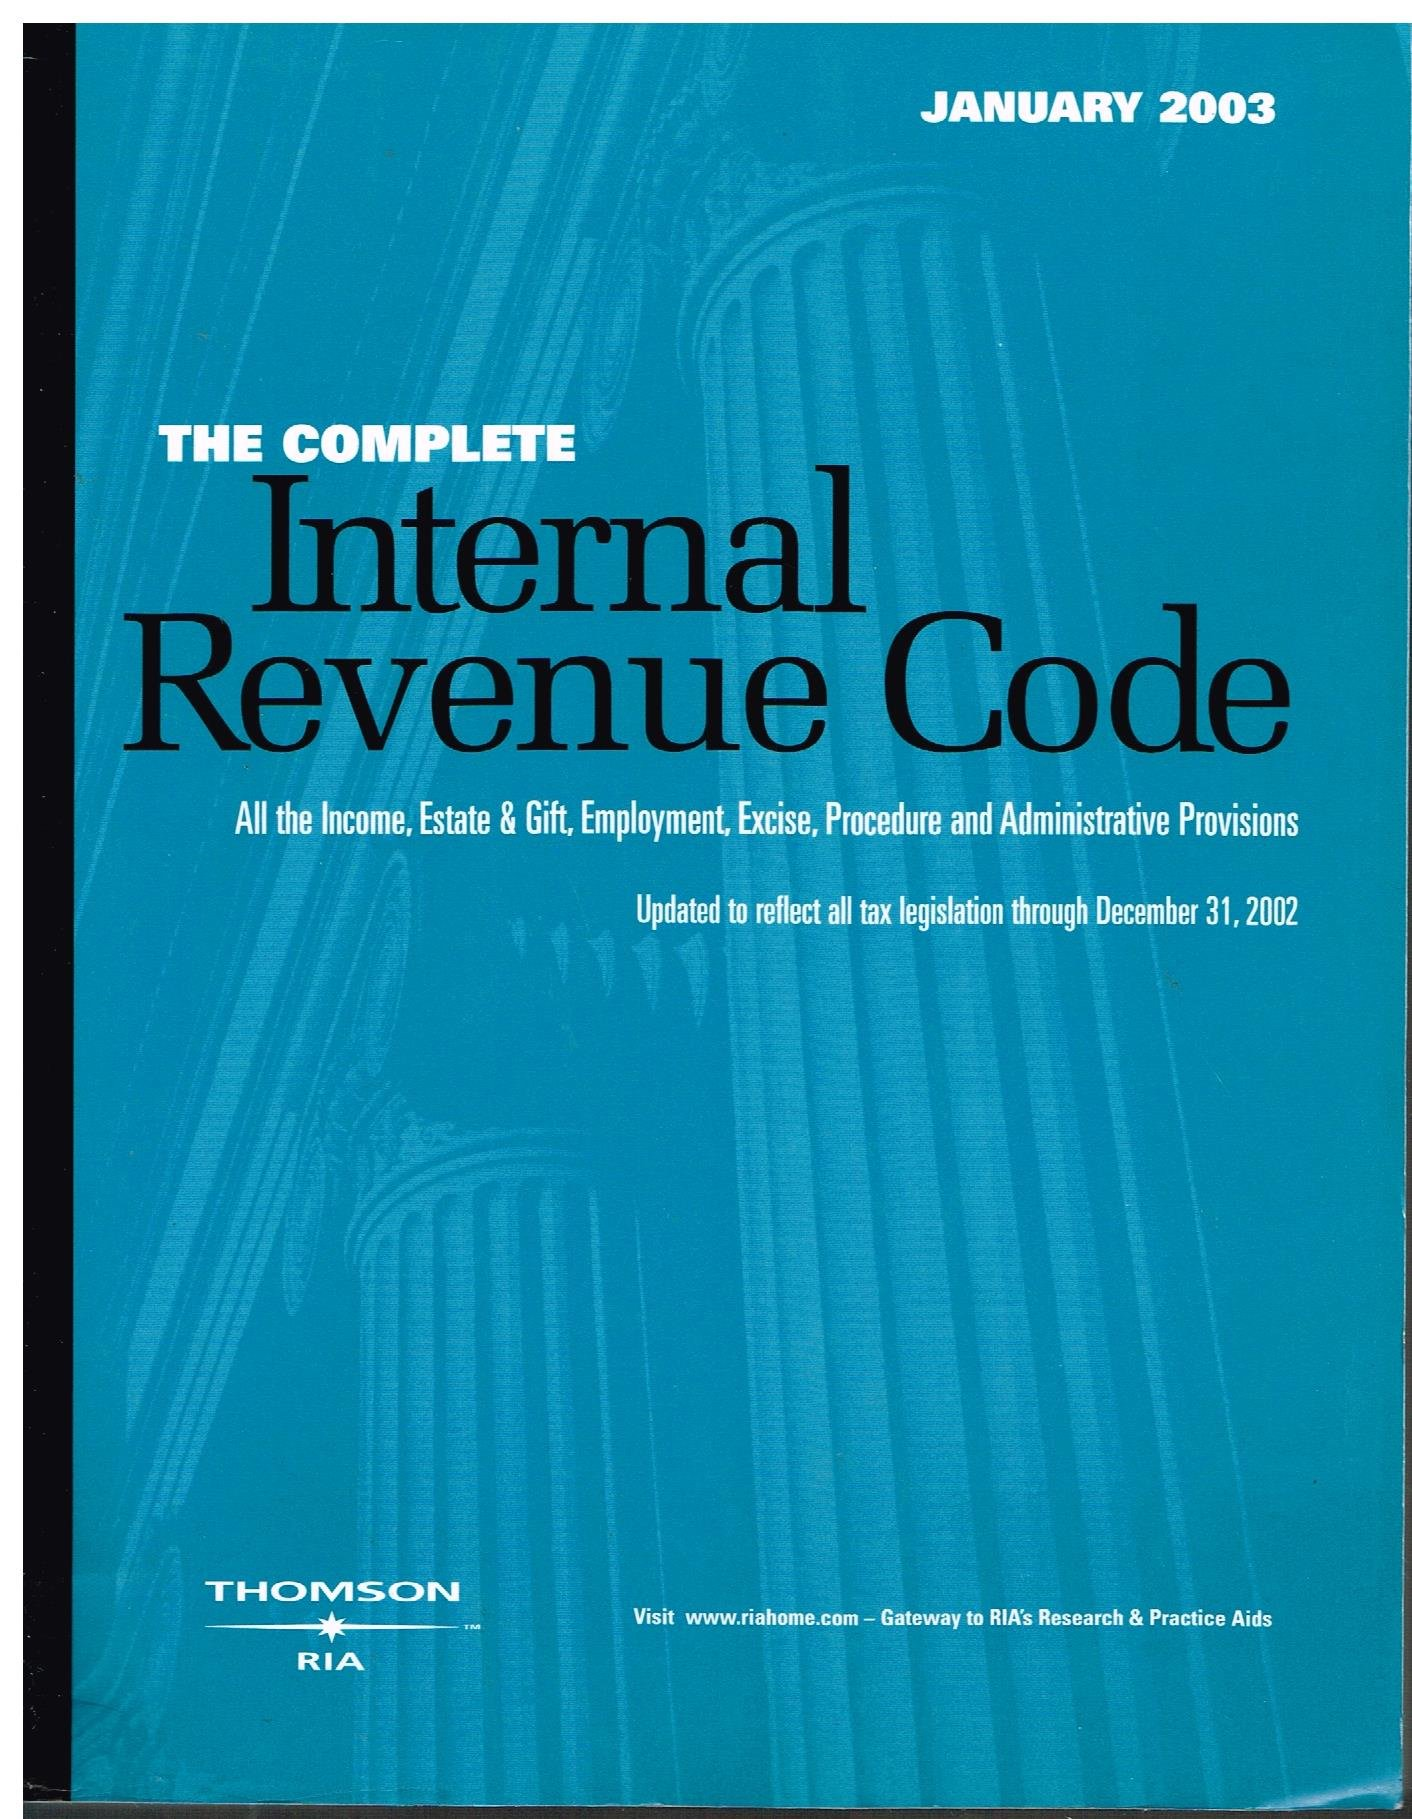 The Complete Internal Revenue Code January 2003: All the Income, Estate & Gift, Employment, Excise, Procedure and Administrative Provisions ebook